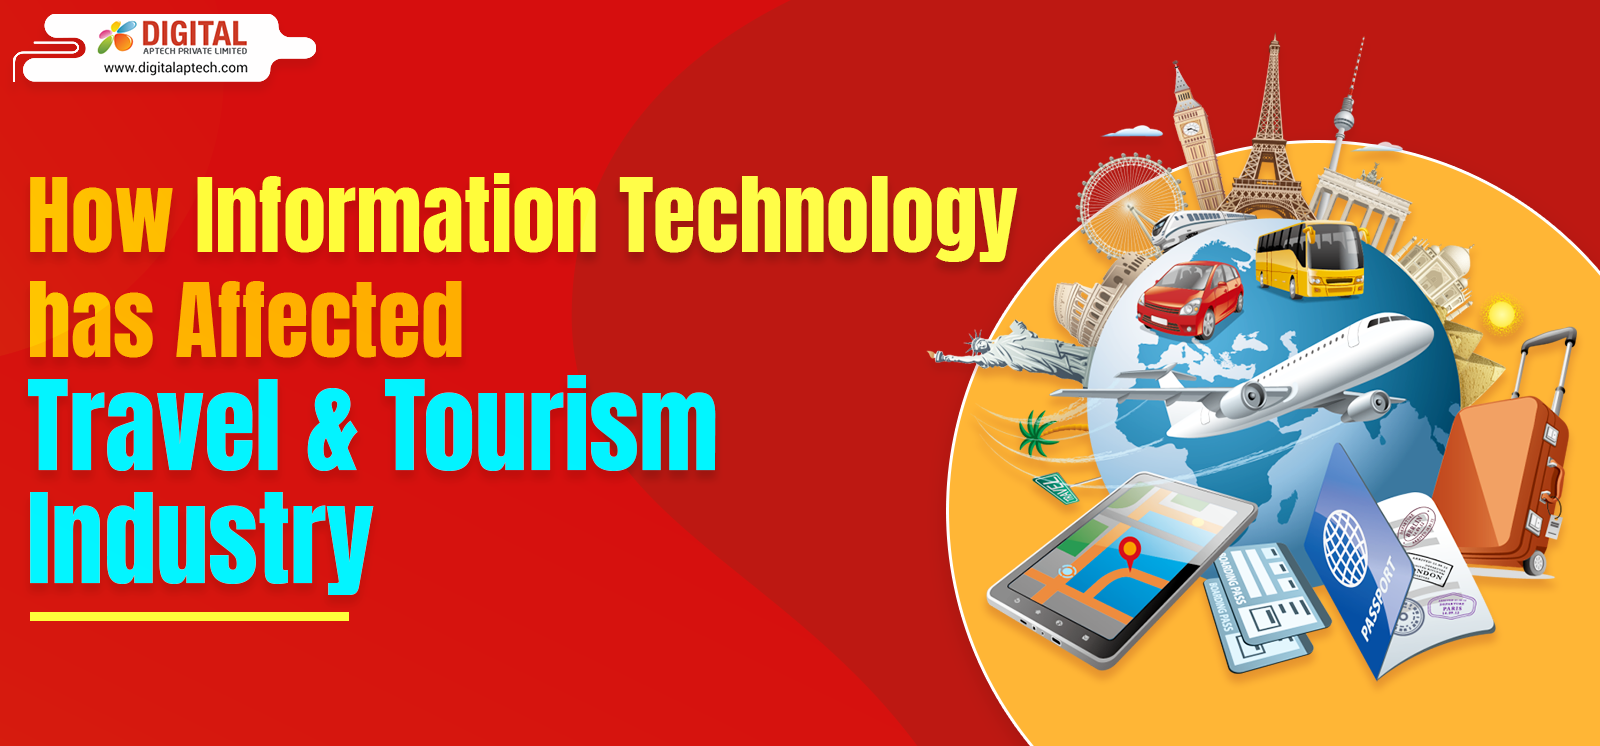 How Information Technology has Affected Travel & Tourism Industry